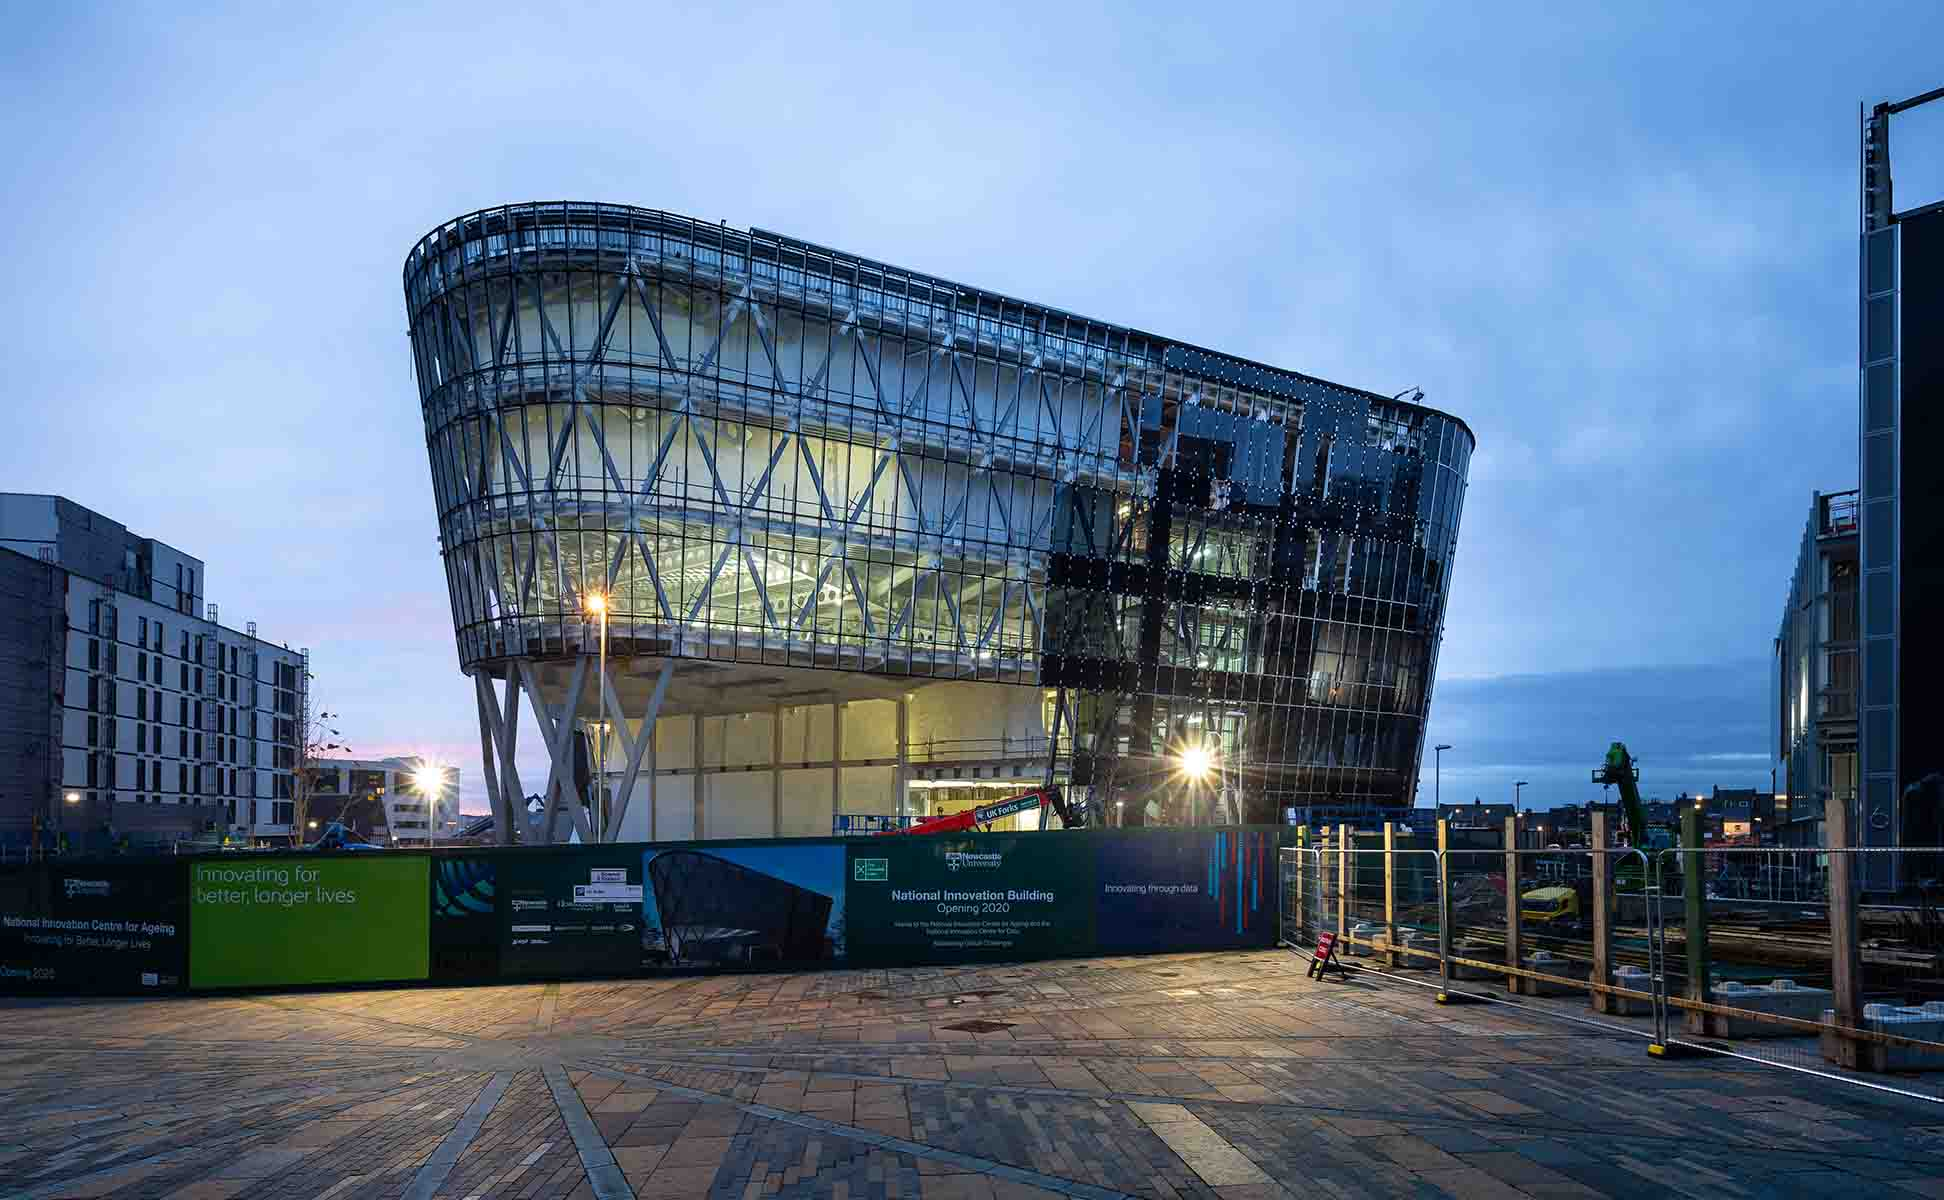 Construction photograph of the National Innovation Centre taken by James Thompson